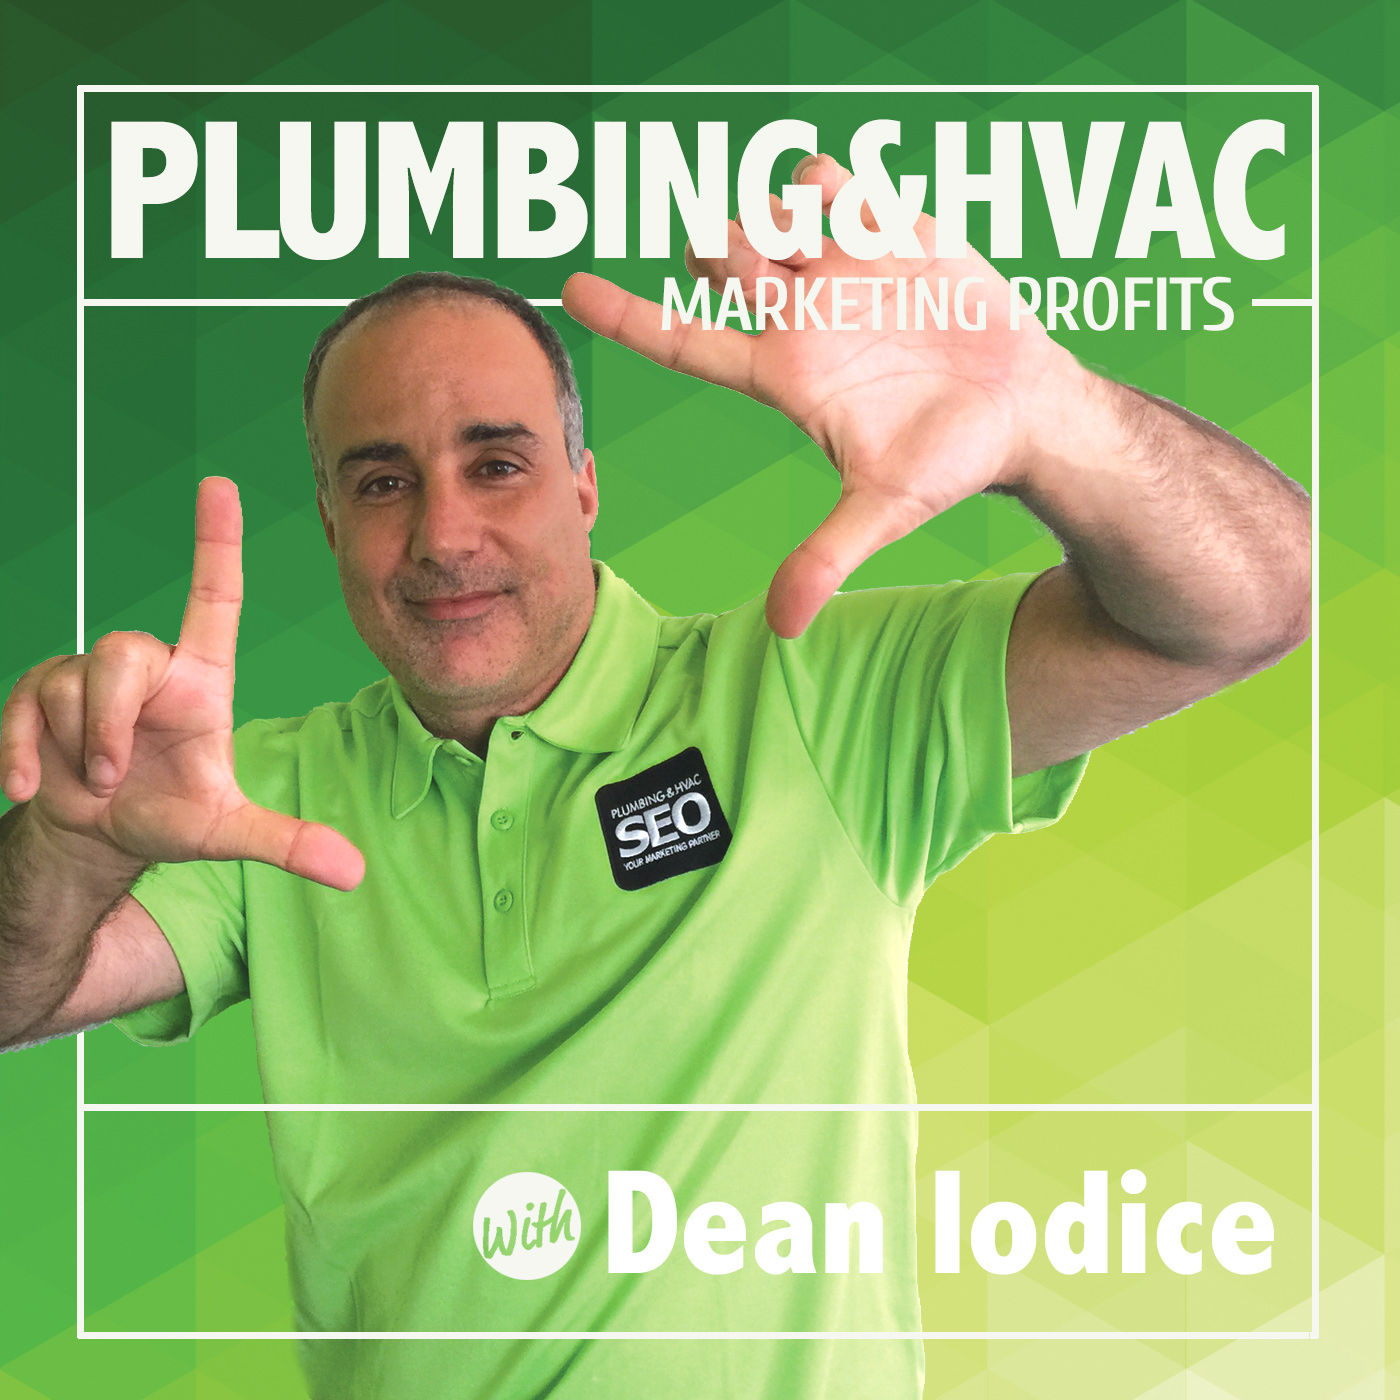 Plumbing & HVAC Marketing Profits